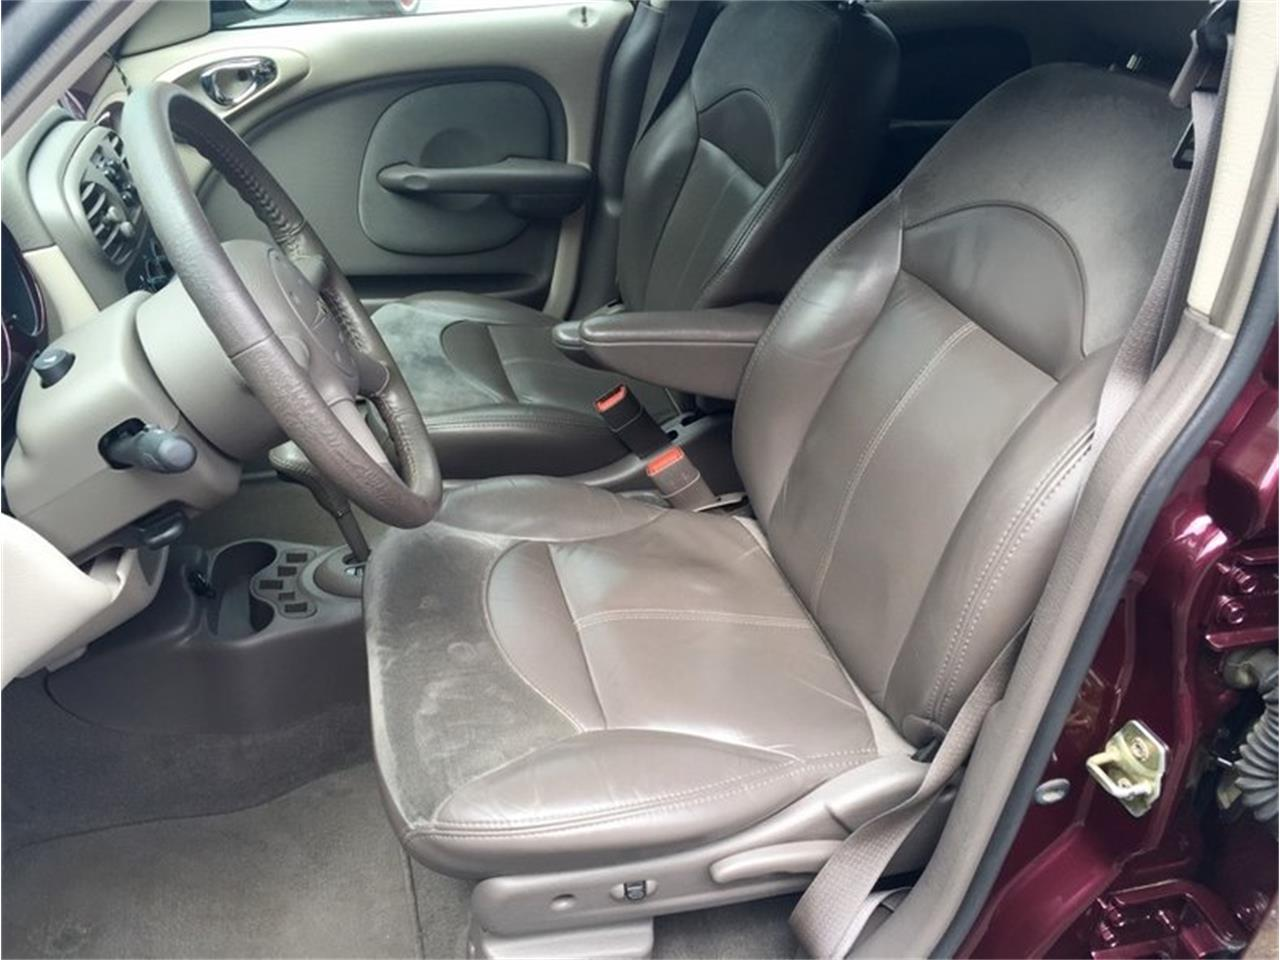 Large Picture of 2002 Chrysler PT Cruiser located in Seattle Washington Auction Vehicle - LVPH